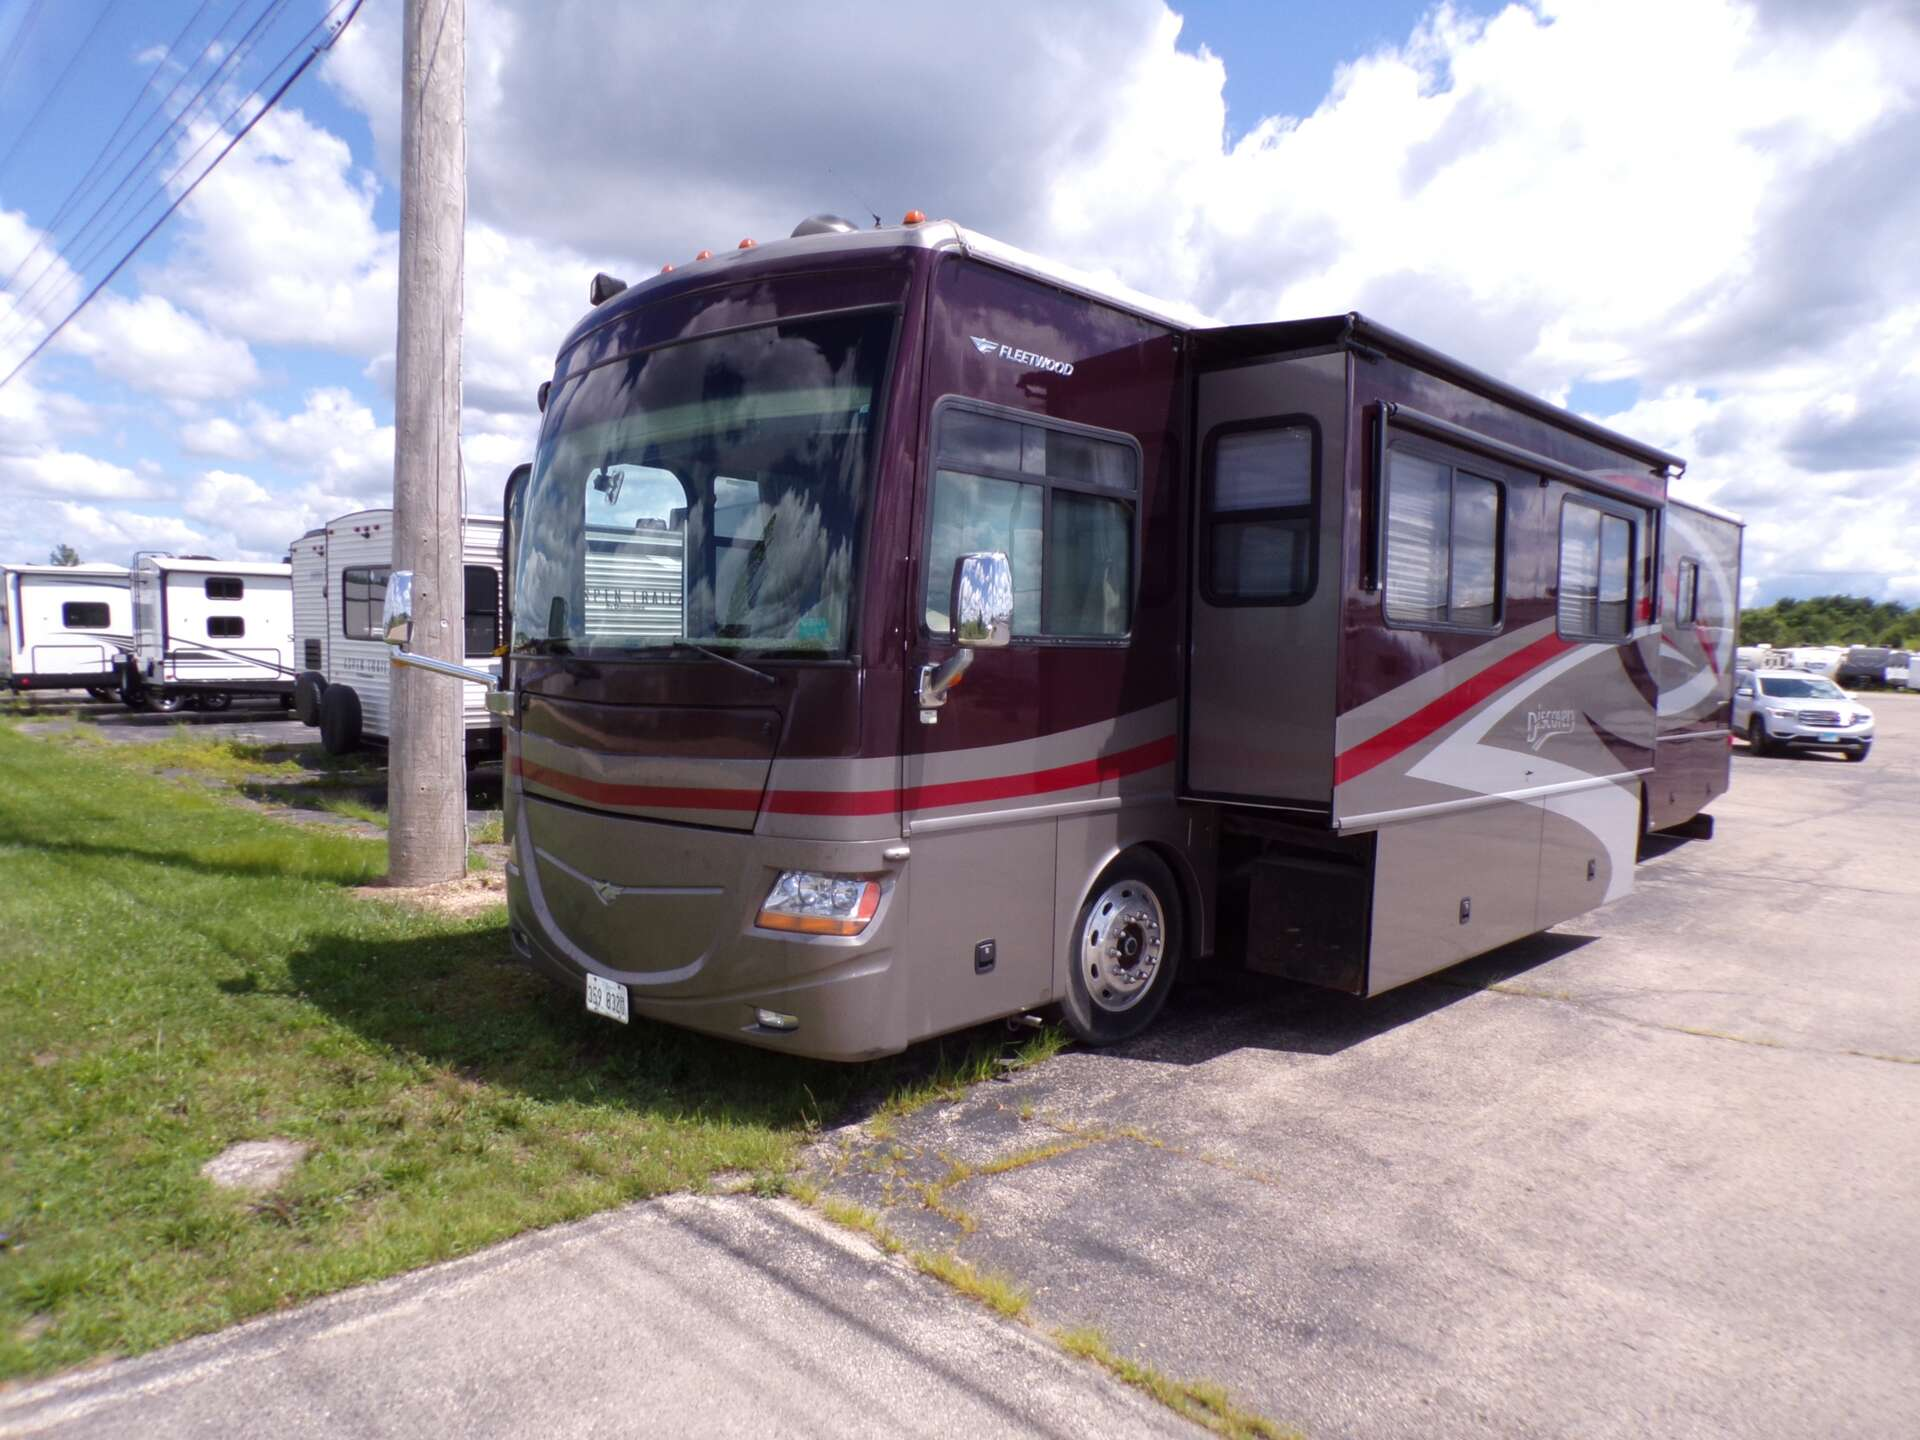 Used, 2008, Fleetwood, DISCOVERY 40X, RV - Class A